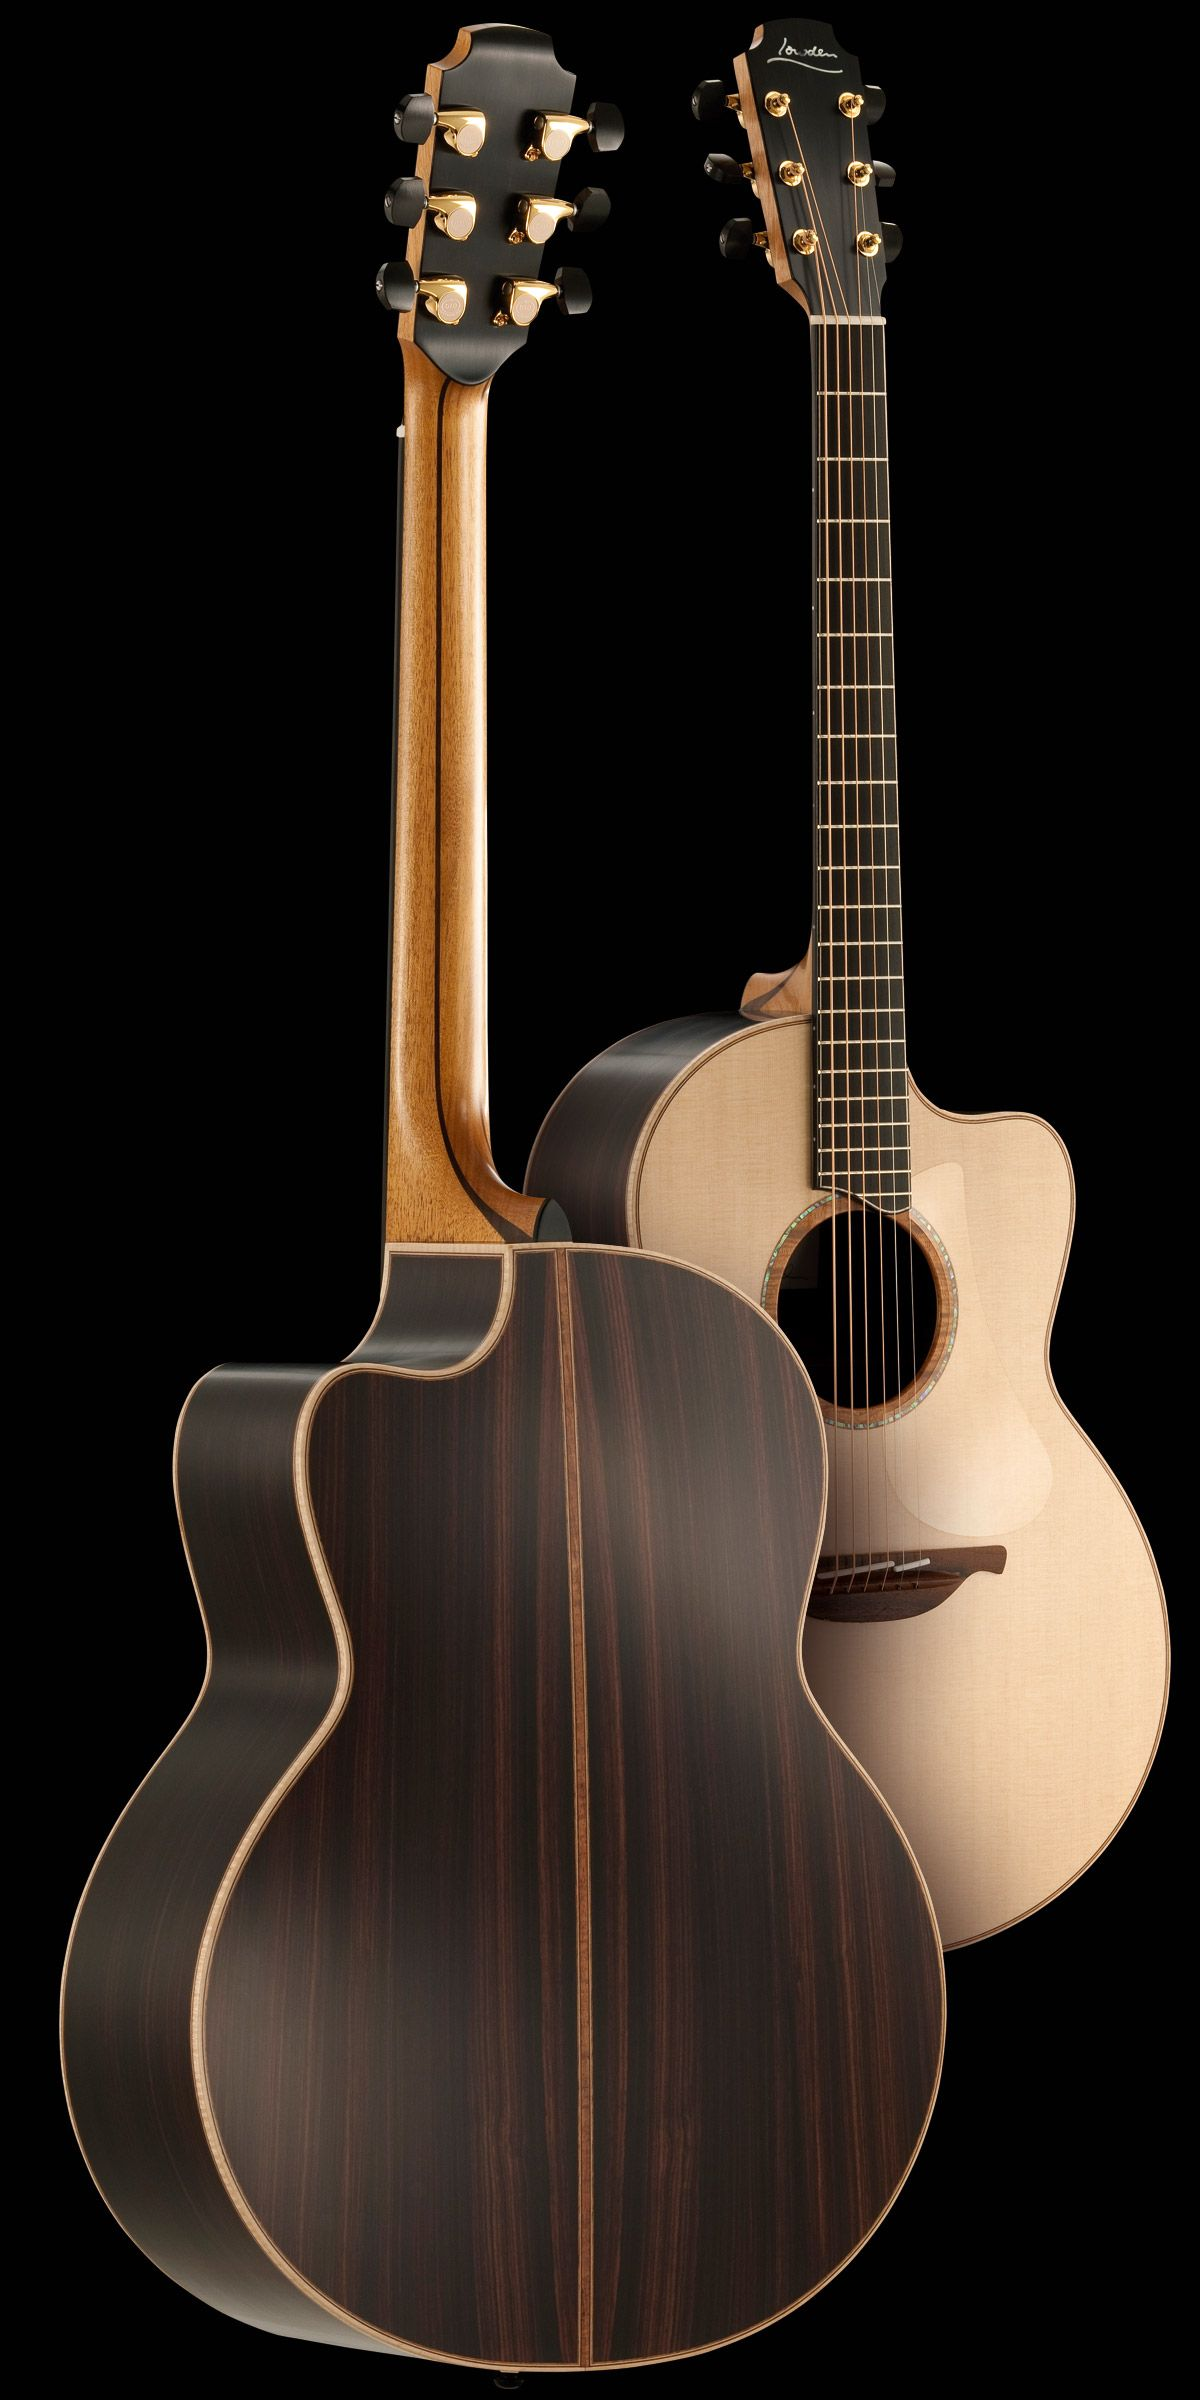 50 Series East Indian Rosewood Sitka Spruce Lowden Guitars Handmade And Hand Built Acoustic Guitar Range From Downpatrick Ir Sitka Sitka Spruce Guitar